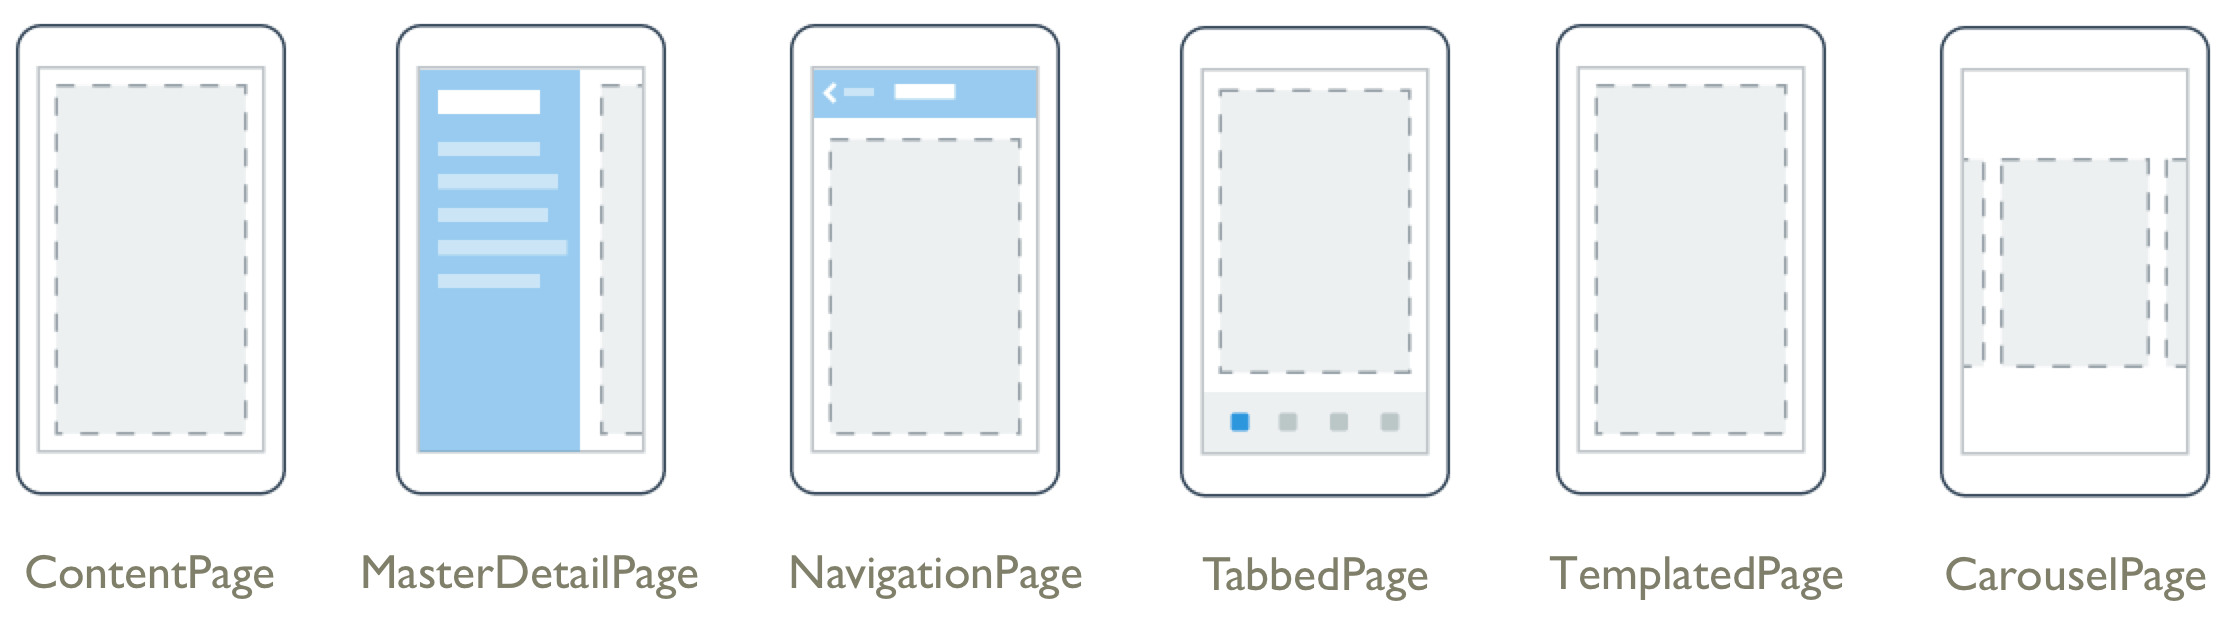 Page types include content, master detail, navigation, tabbed, templated, and carousel